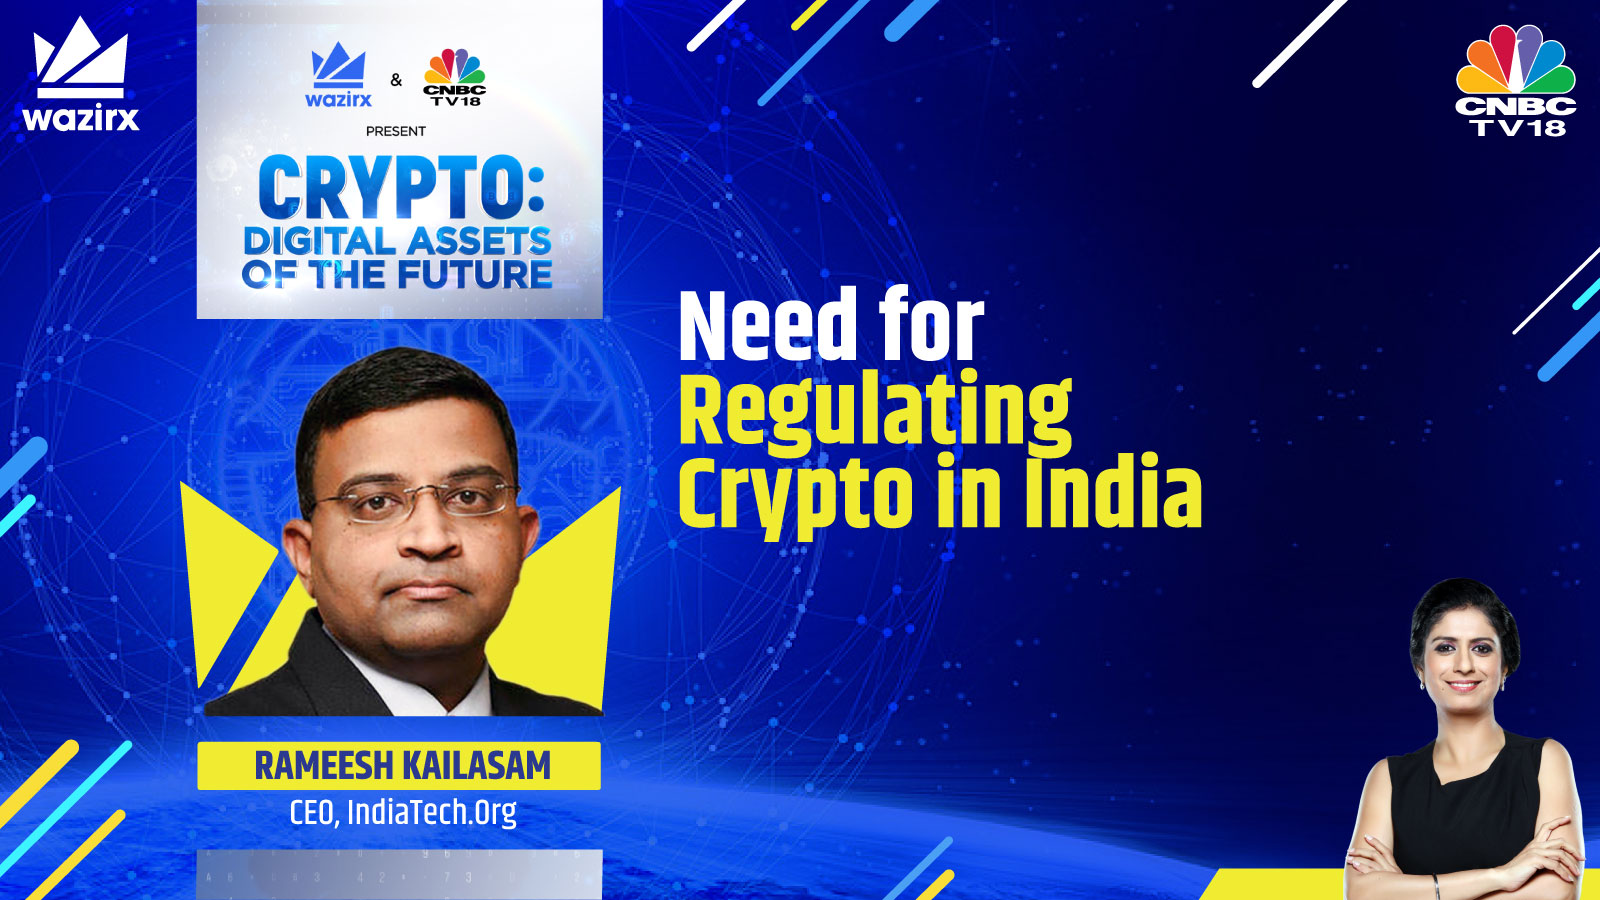 Rameesh Kailasam on Need for Regulating Crypto in India